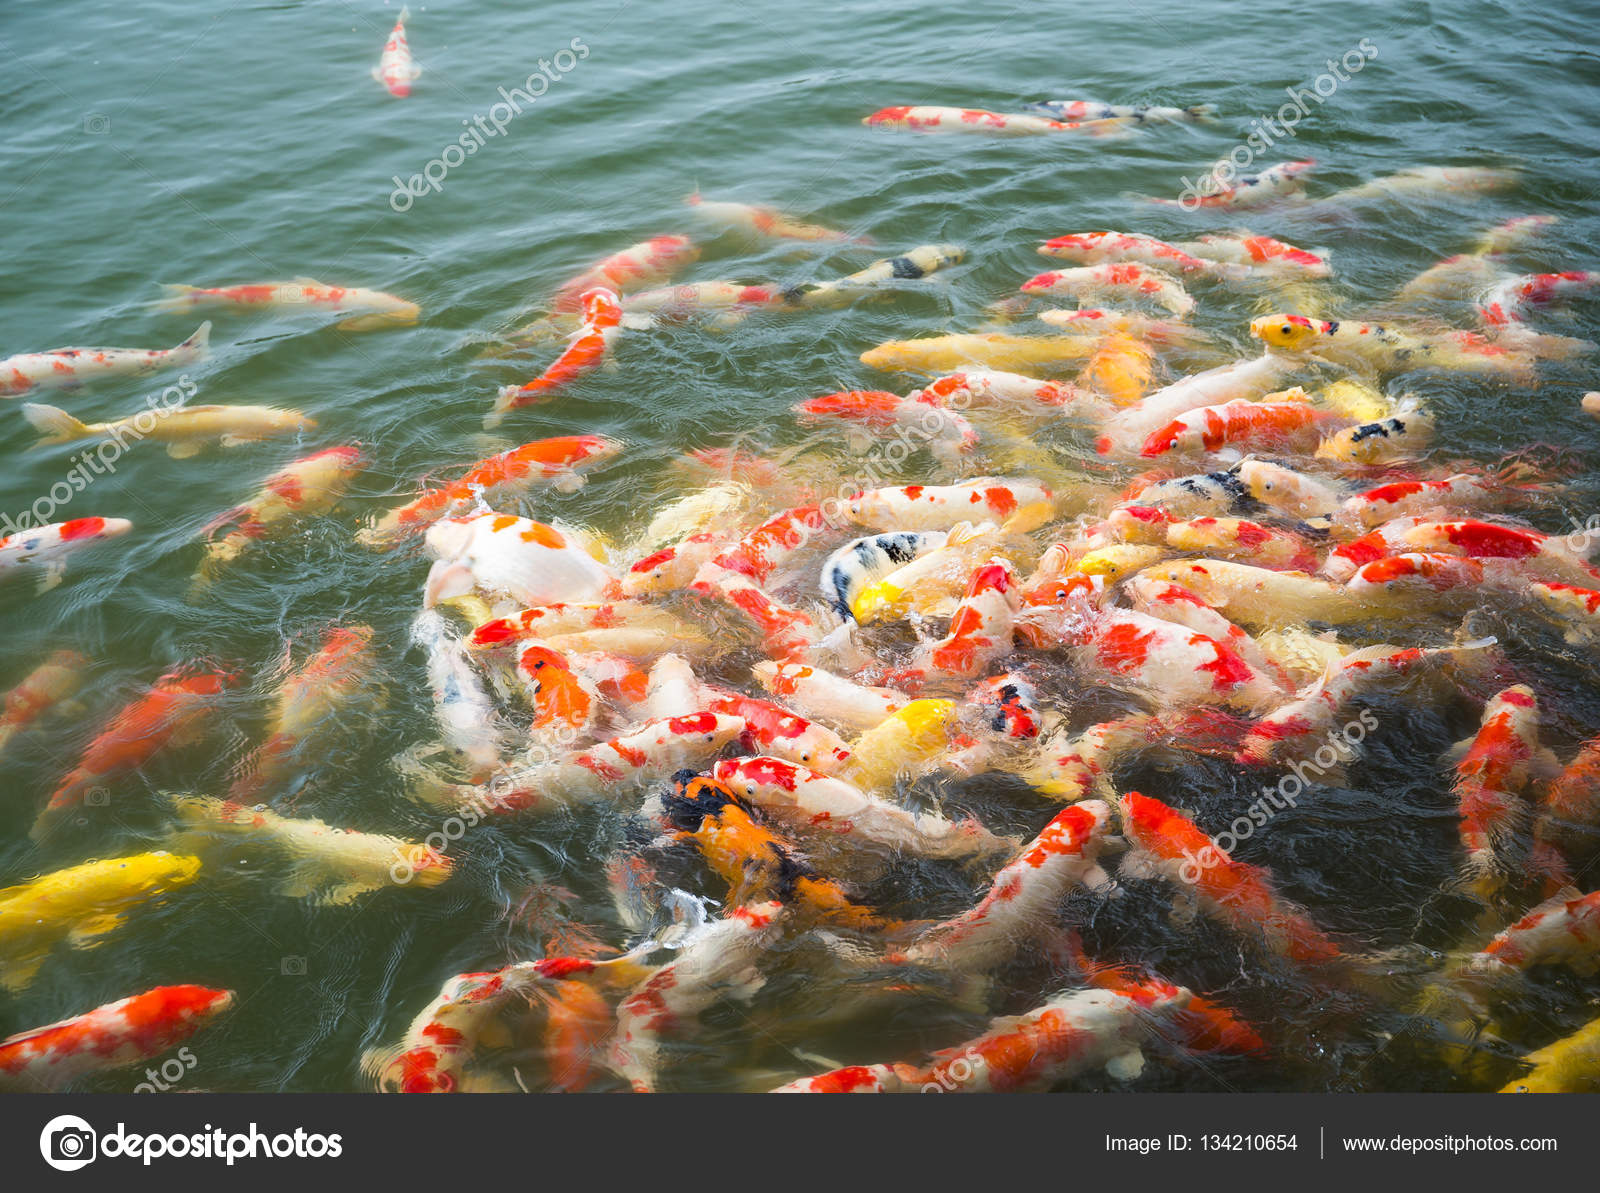 Carpes koi japon dans tang de koi photographie for Koi pond supply of japan